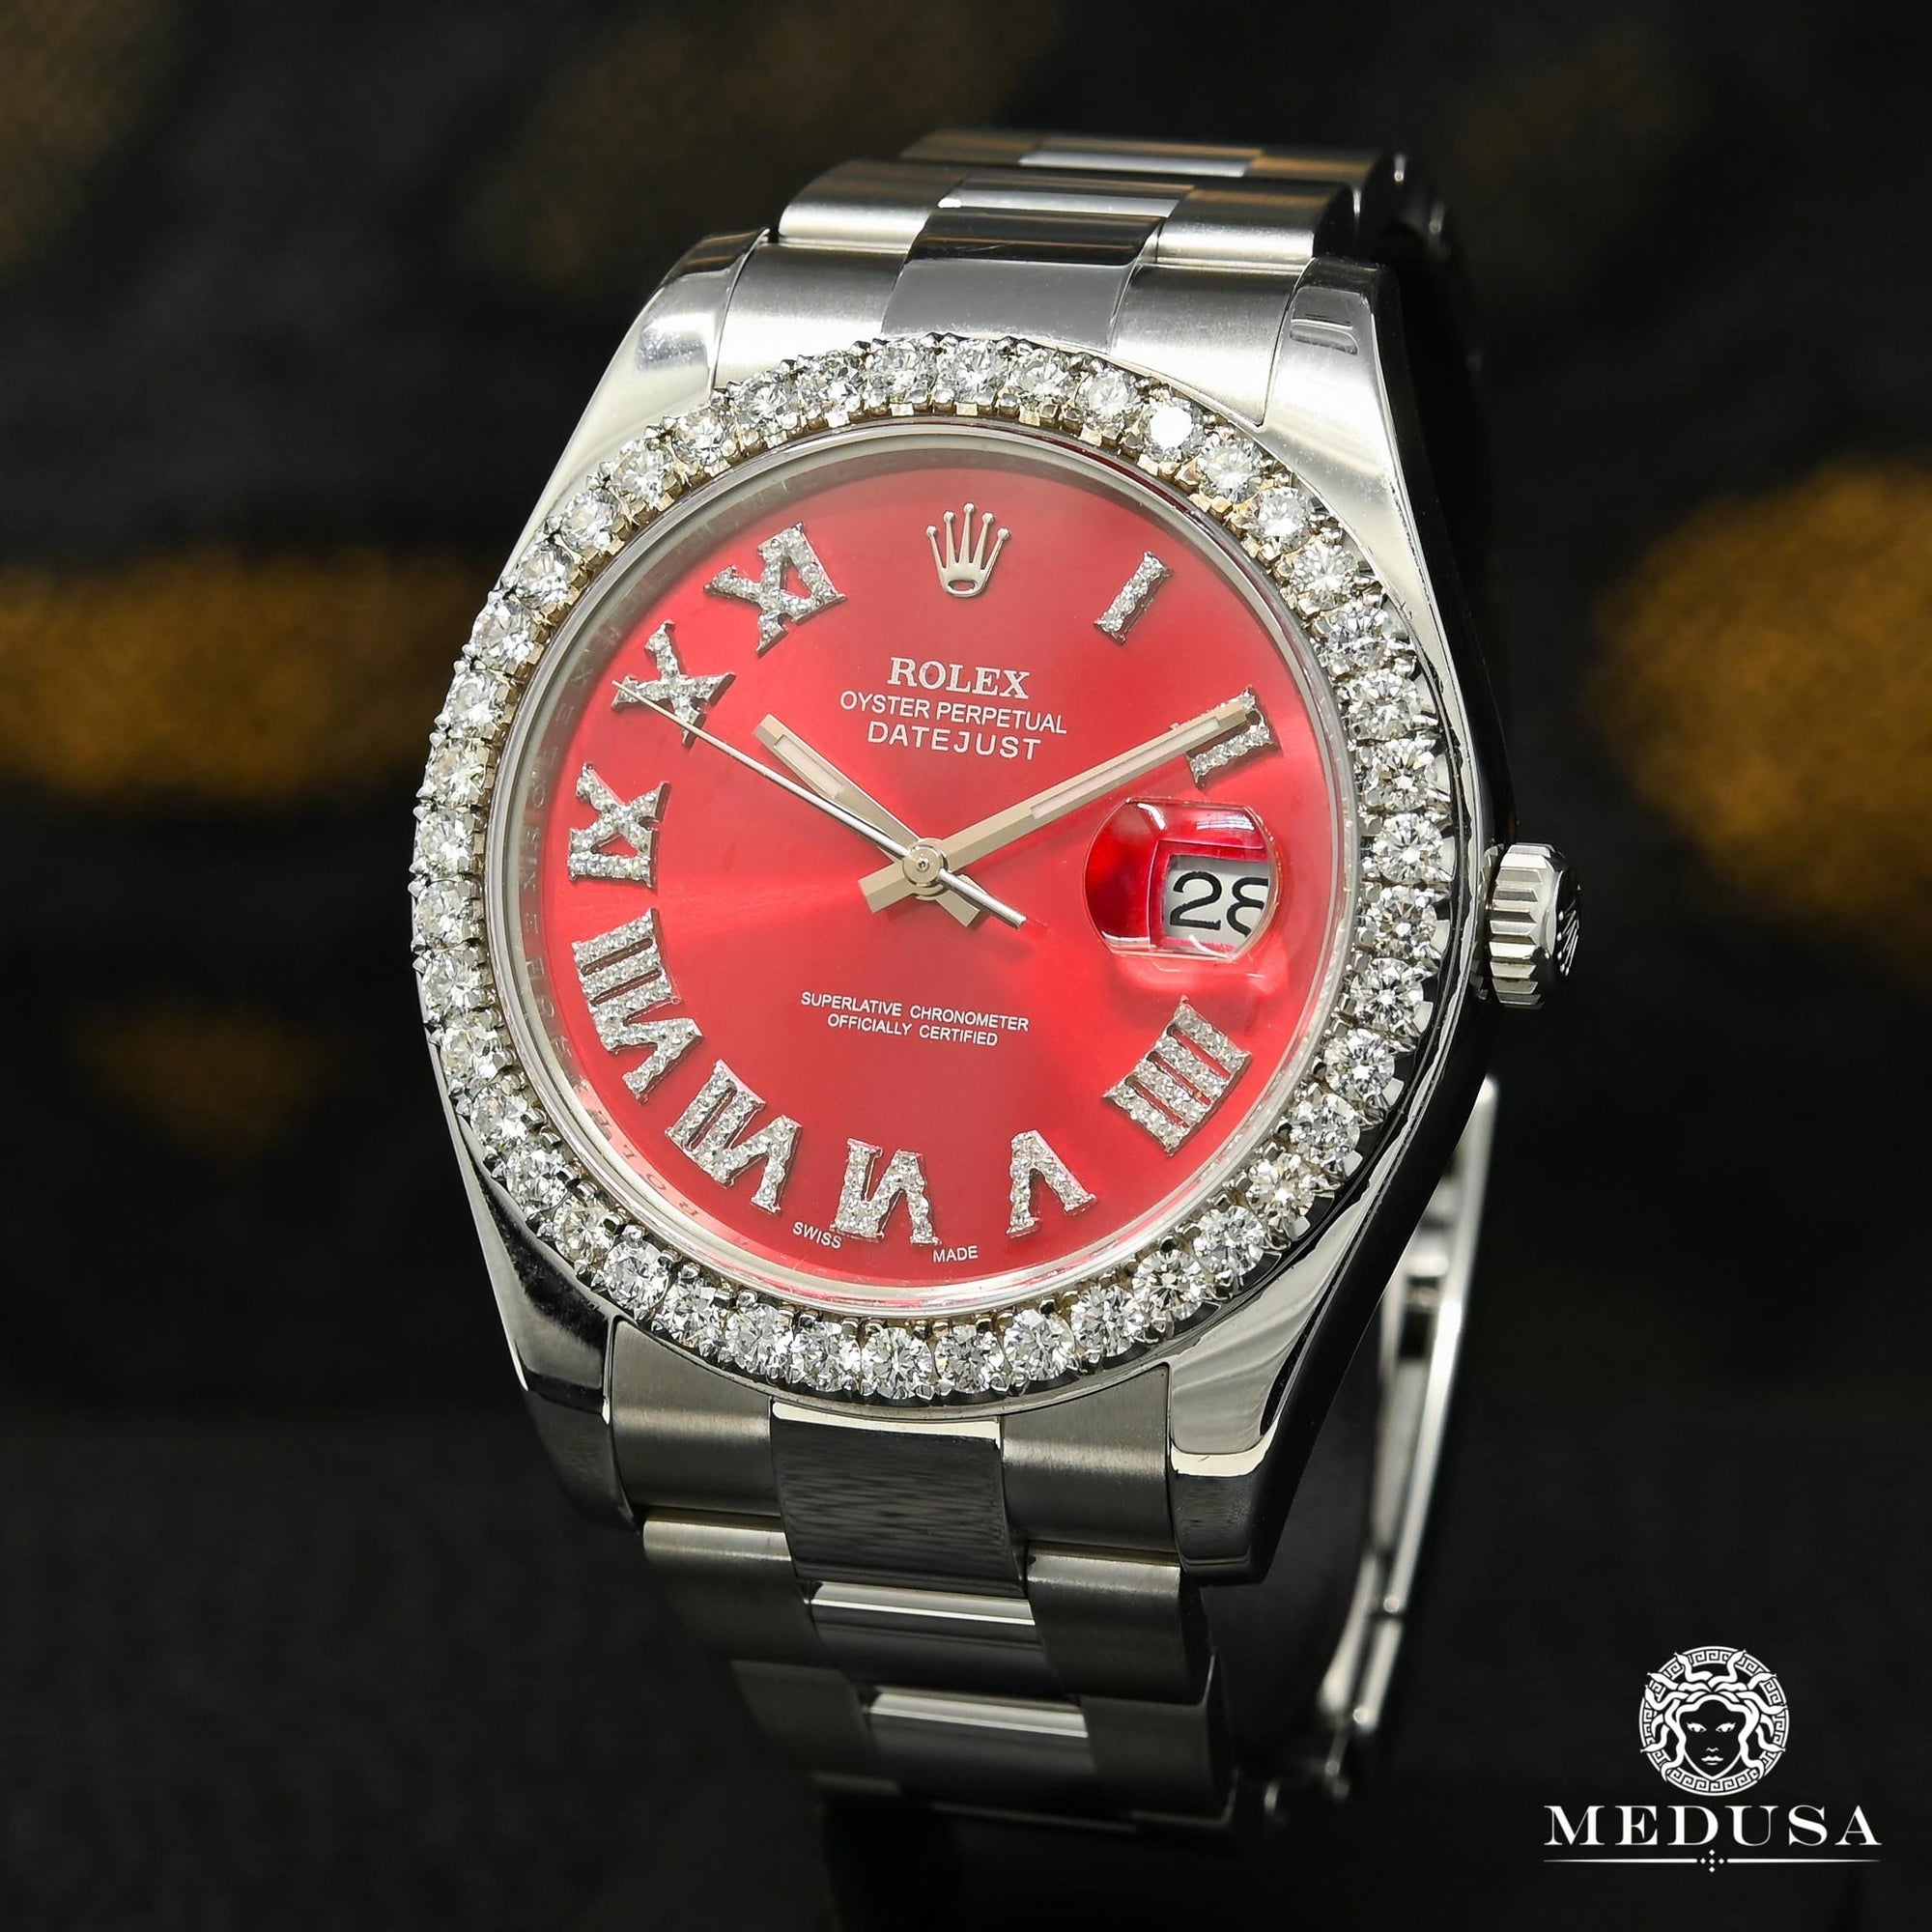 Rolex Datejust 41mm - Red Romain Iced